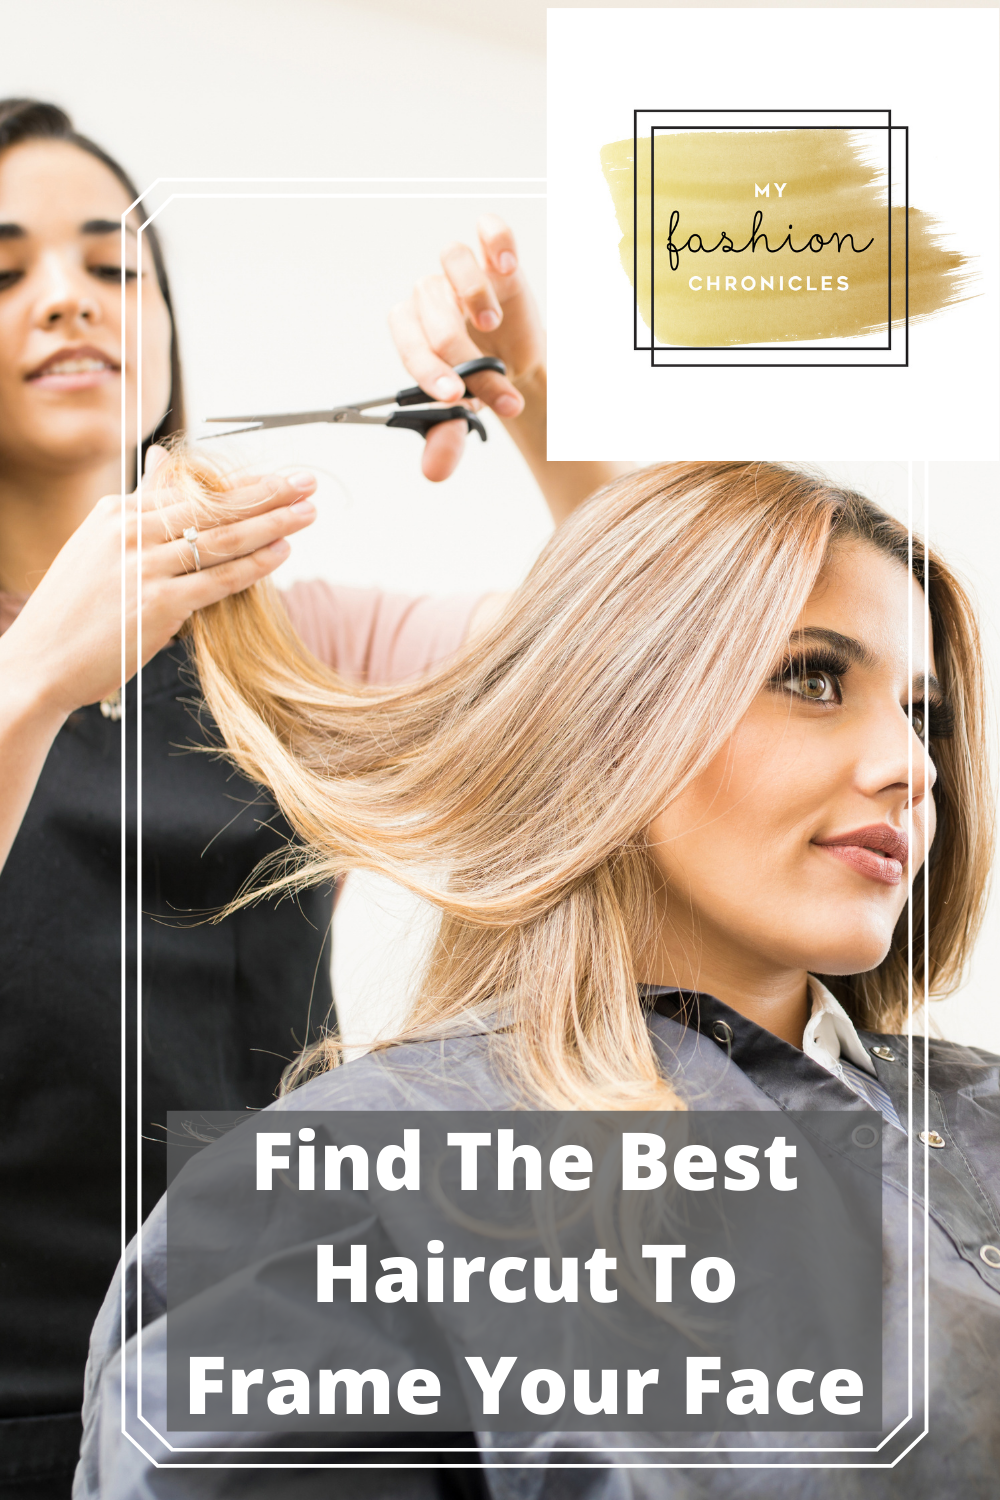 Myfashionchronicles.com will have you looking your best, all the time. Find tips and tricks for staying in style so you can look good AND feel good. Before your next haircut, find out what 'do will suit your face shape.